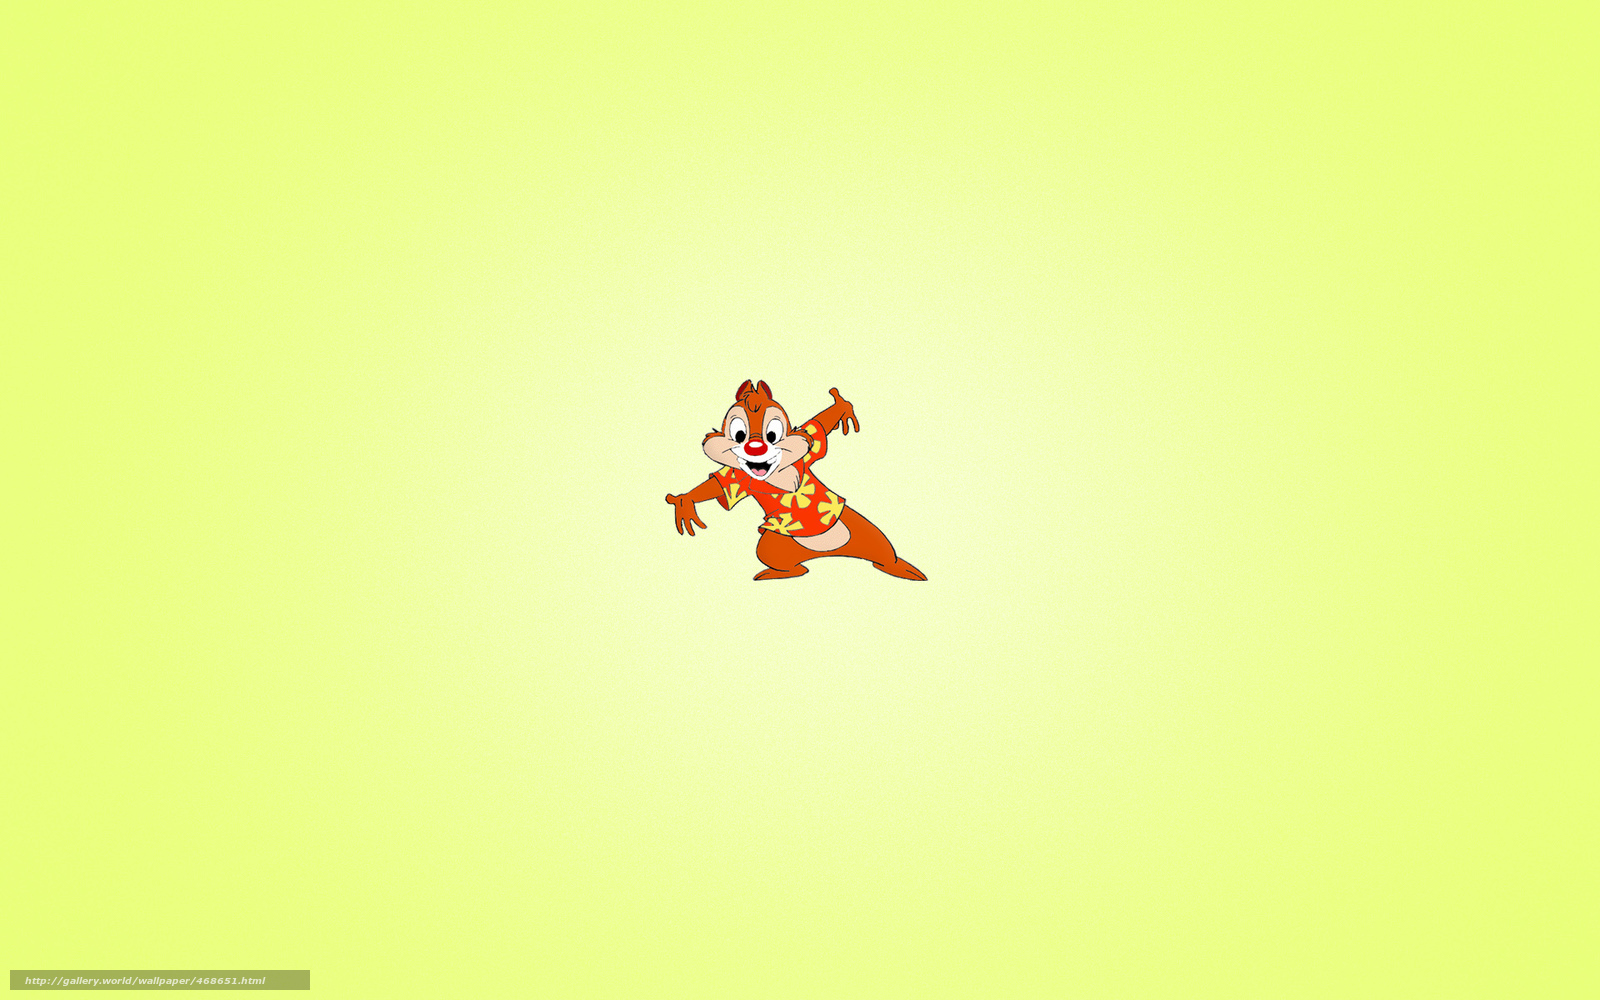 Download wallpaper chip and dale rescue rangers chip 39 n - Chip n dale wallpapers free download ...